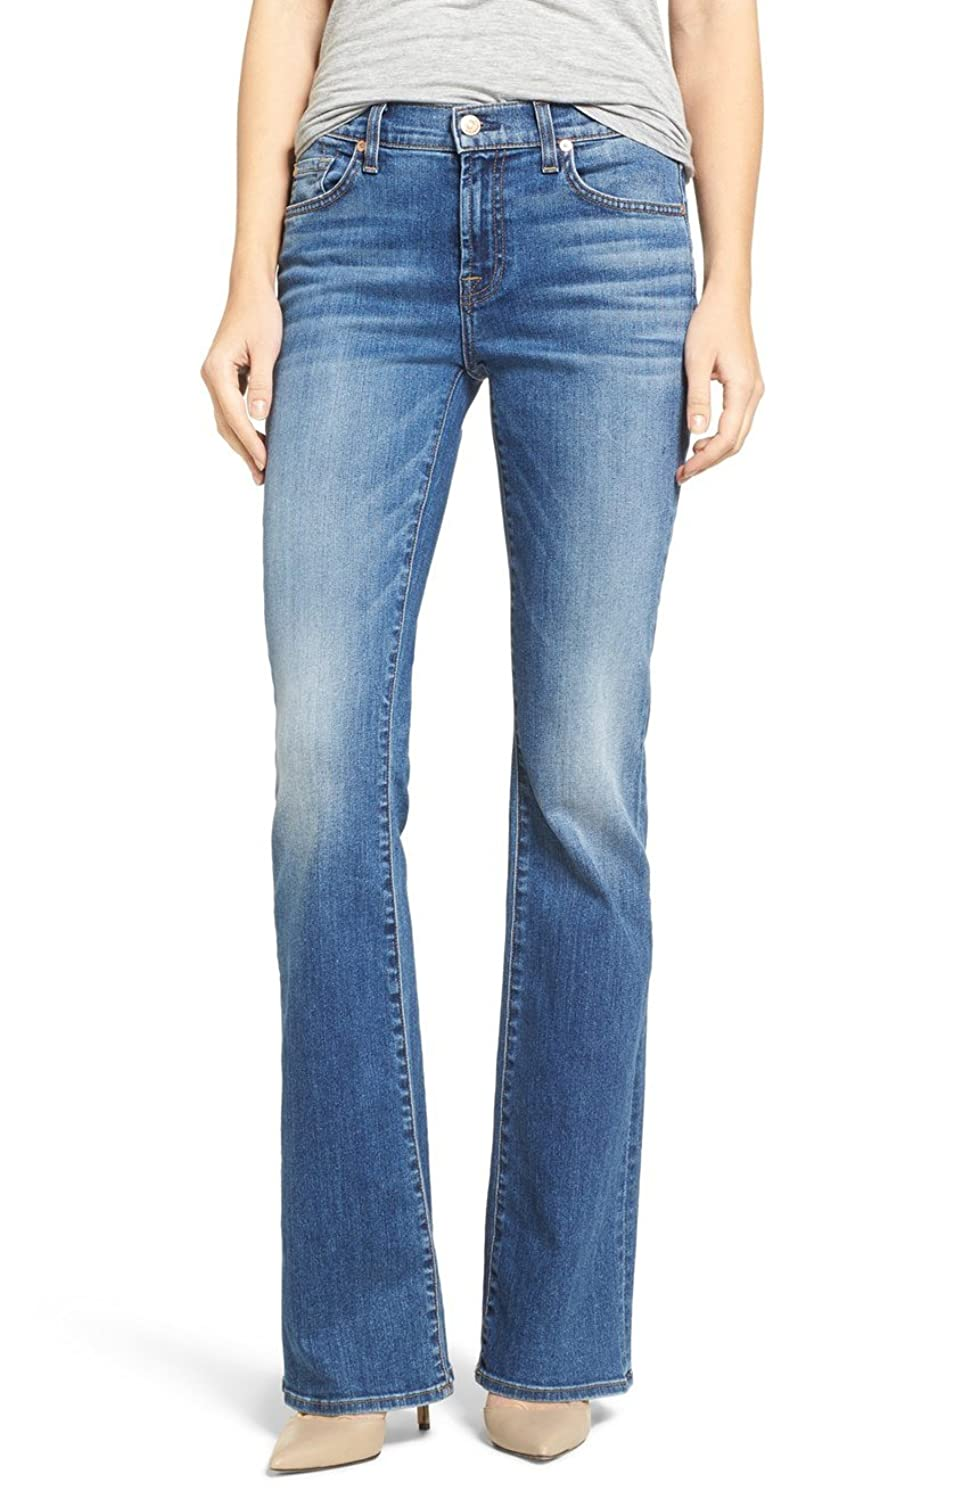 7 For All Mankind Women's AU075S424 BootCut Wide Leg Denim Jeans 27 X 31